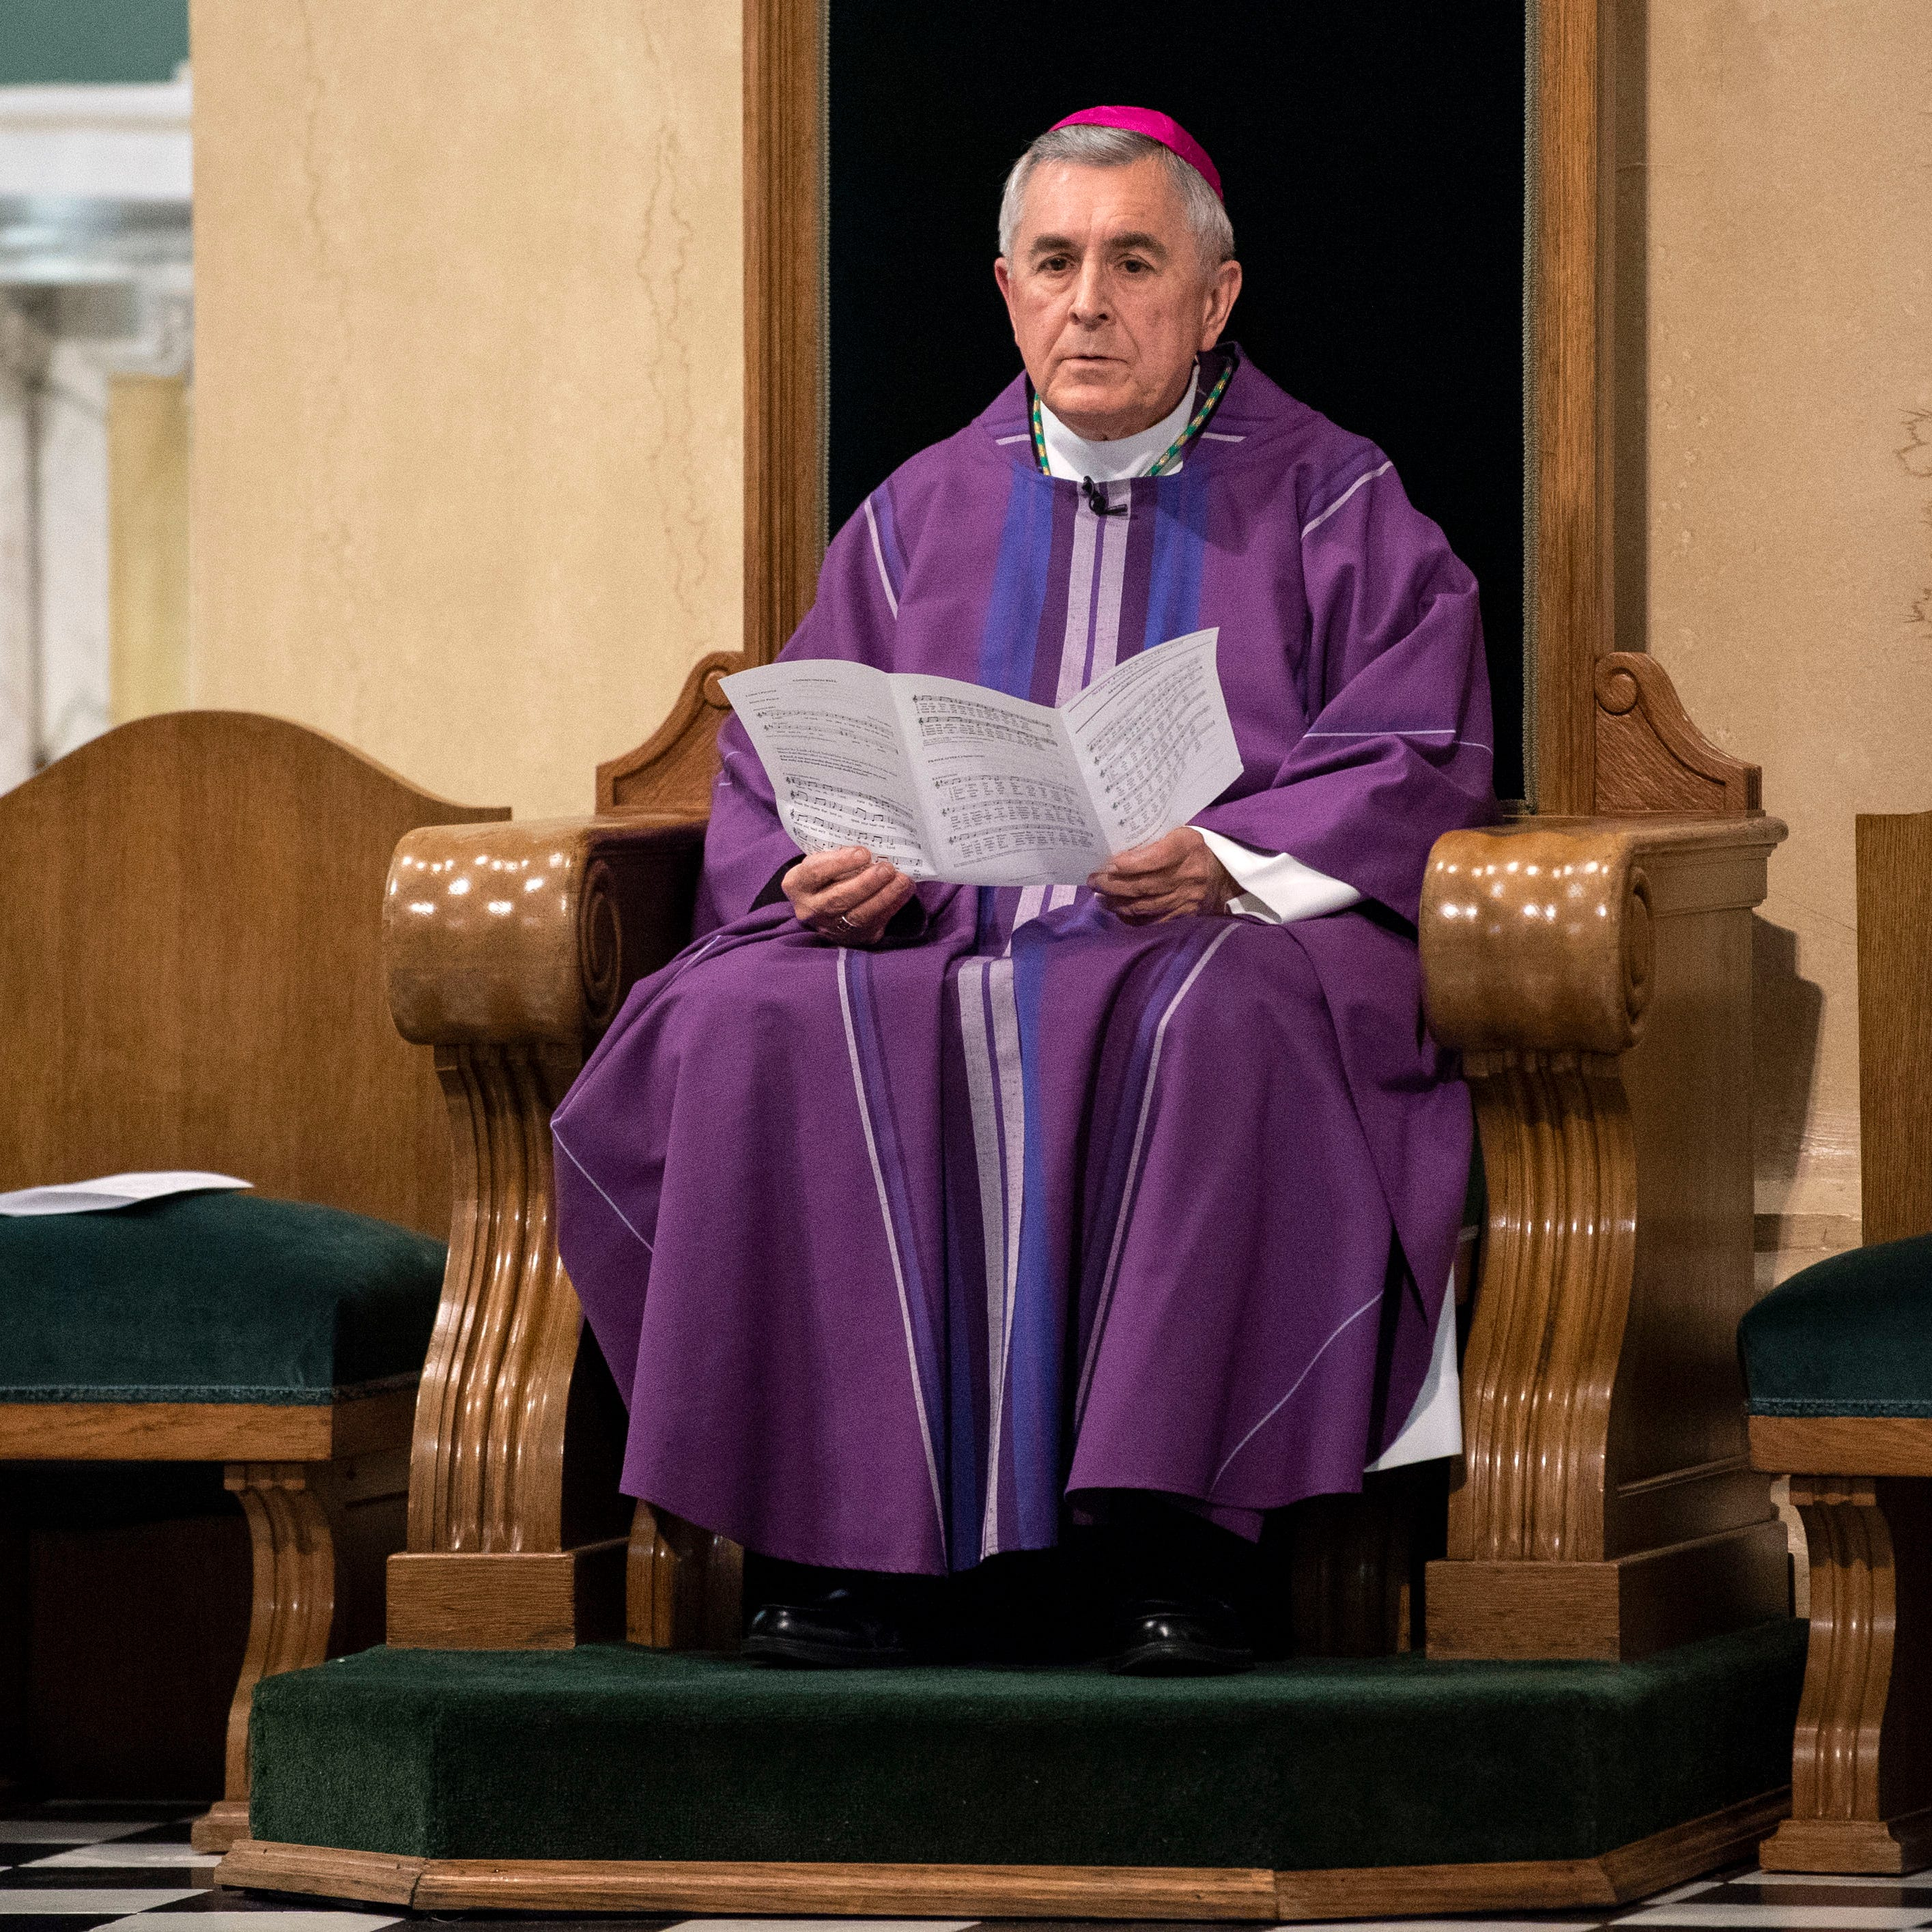 Bishop changes course, asks pope to defrock last abusive priest on church payroll in Pa.